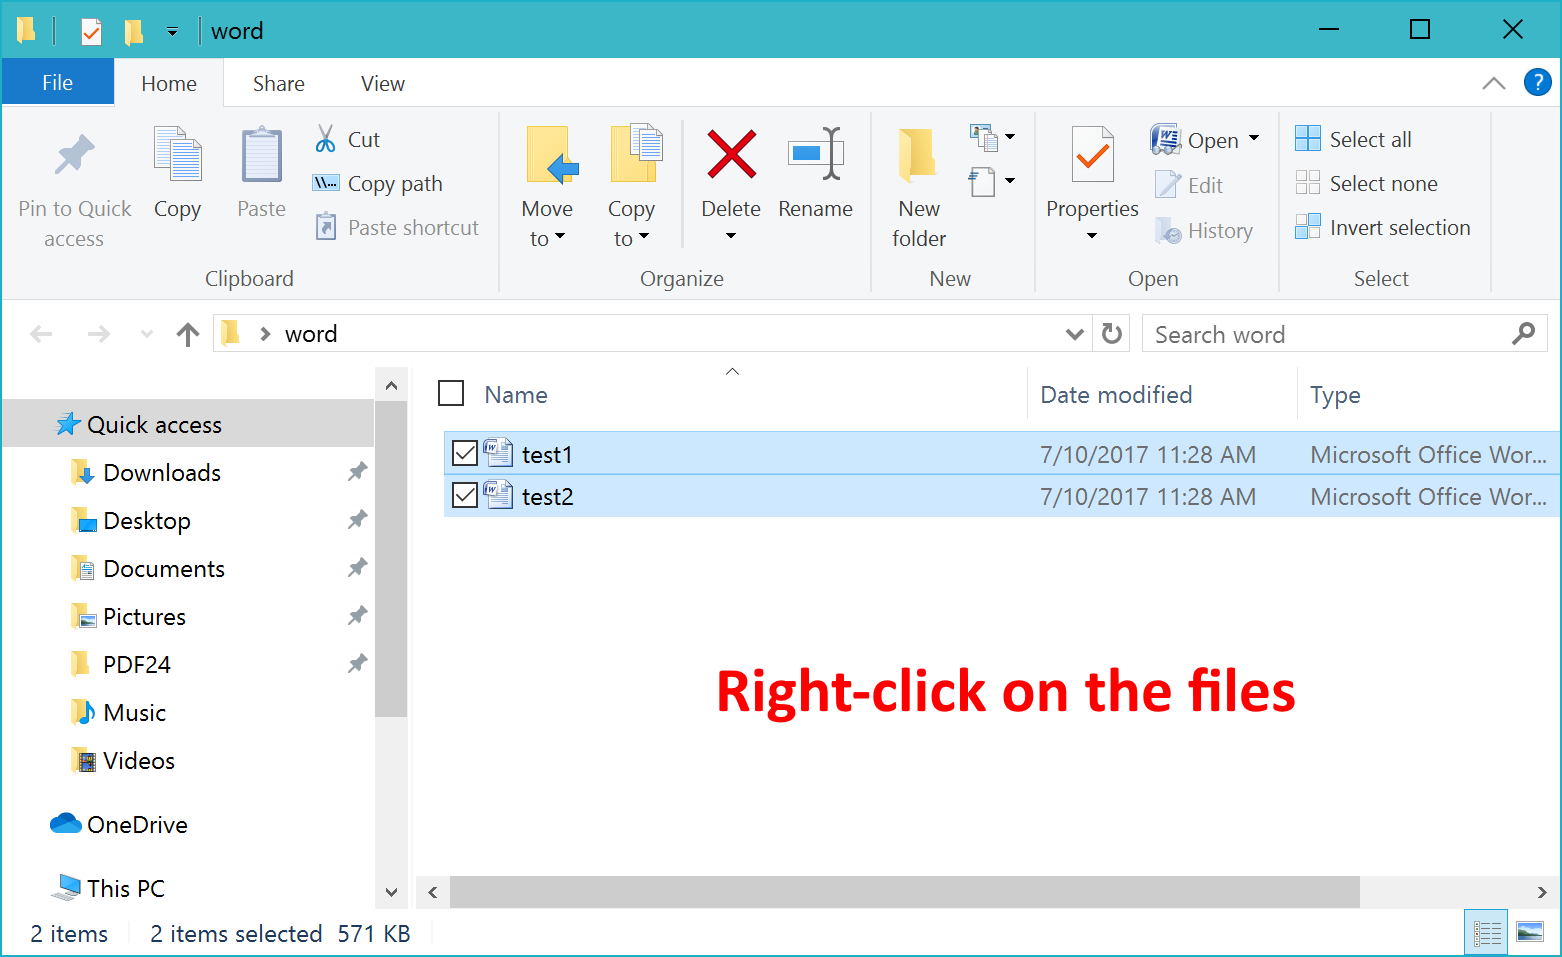 Right-click on the files to open context menu